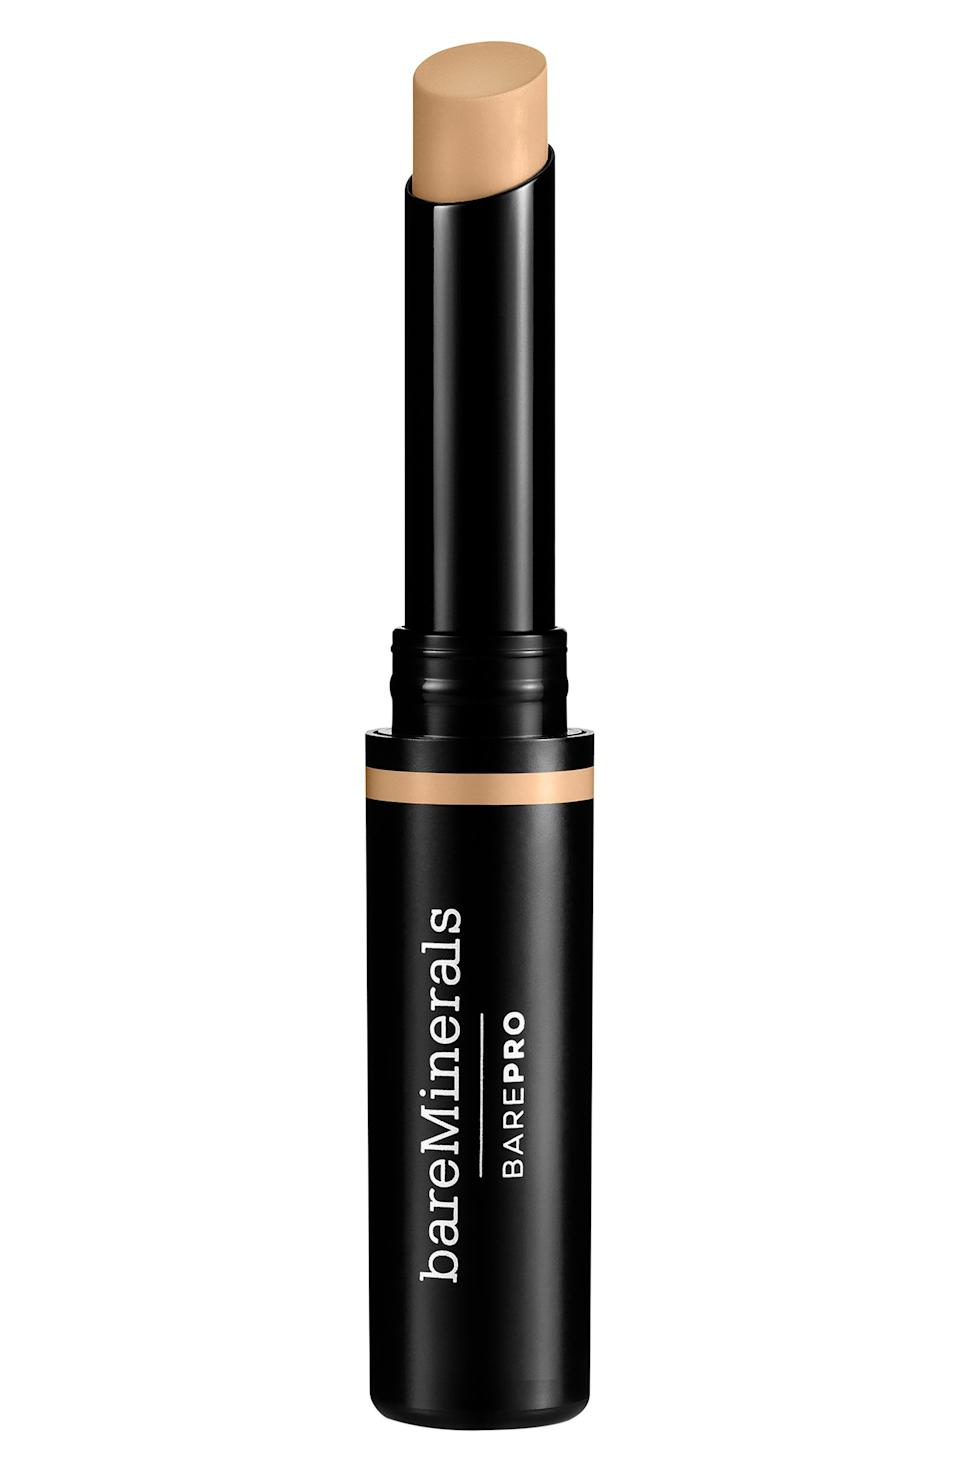 """<p><strong>BAREMINERALS</strong></p><p>nordstrom.com</p><p><strong>$25.00</strong></p><p><a href=""""https://go.redirectingat.com?id=74968X1596630&url=https%3A%2F%2Fwww.nordstrom.com%2Fs%2Fbareminerals-barepro-stick-concealer%2F4882249&sref=https%3A%2F%2Fwww.thepioneerwoman.com%2Fbeauty%2Fskin-makeup-nails%2Fg36563969%2Fbest-concealers-for-mature-skin%2F"""" rel=""""nofollow noopener"""" target=""""_blank"""" data-ylk=""""slk:Shop Now"""" class=""""link rapid-noclick-resp"""">Shop Now</a></p><p>This stick concealer is sold in nine shades and is designed to stay put all day long. In a one-week U.S. study of 95 women, 97% agreed this concealer wears comfortably throughout the day.</p>"""